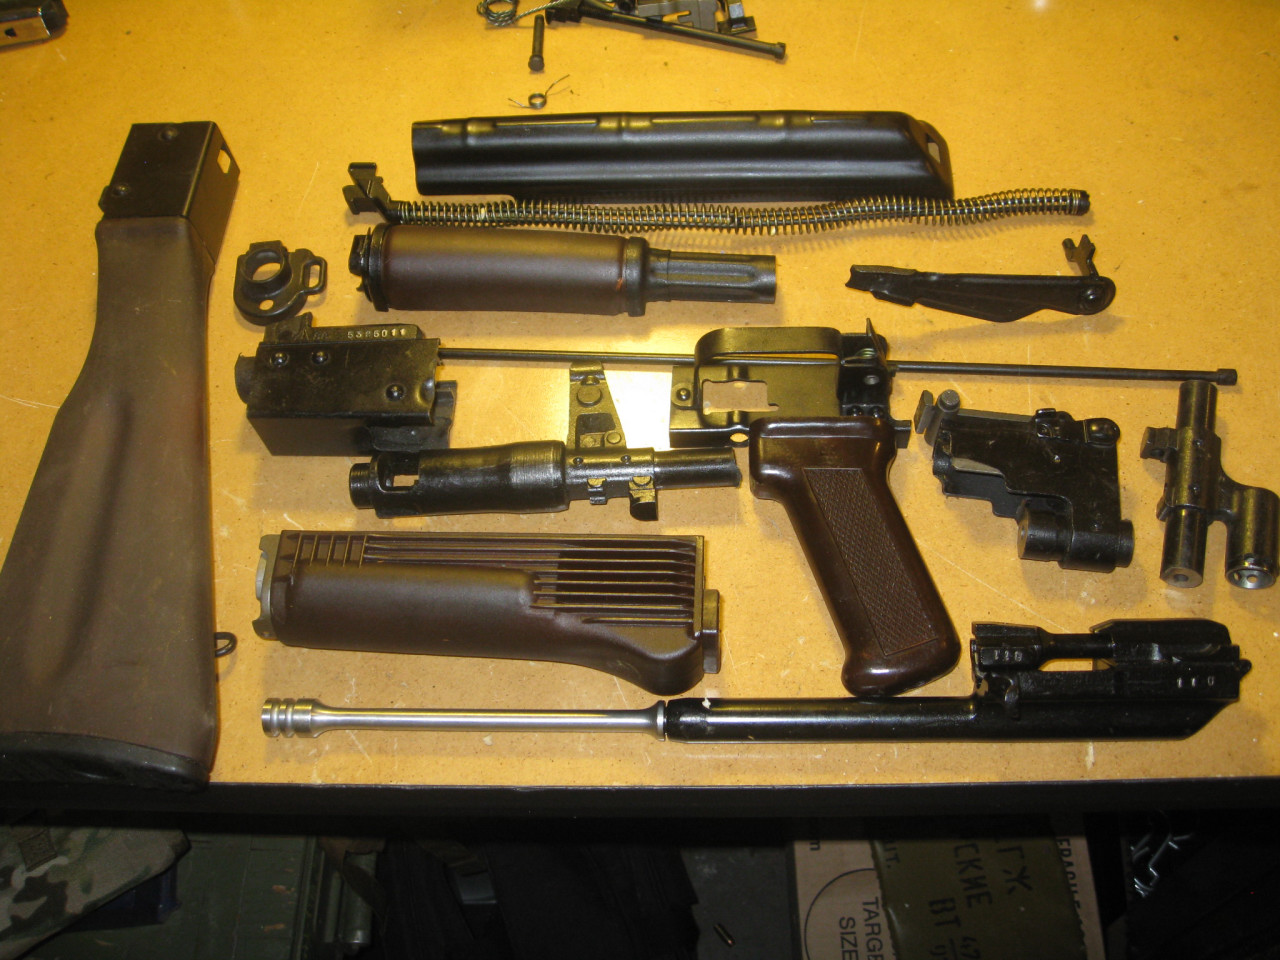 Russian AK furniture and folding hardware, S12 magwell, SVD